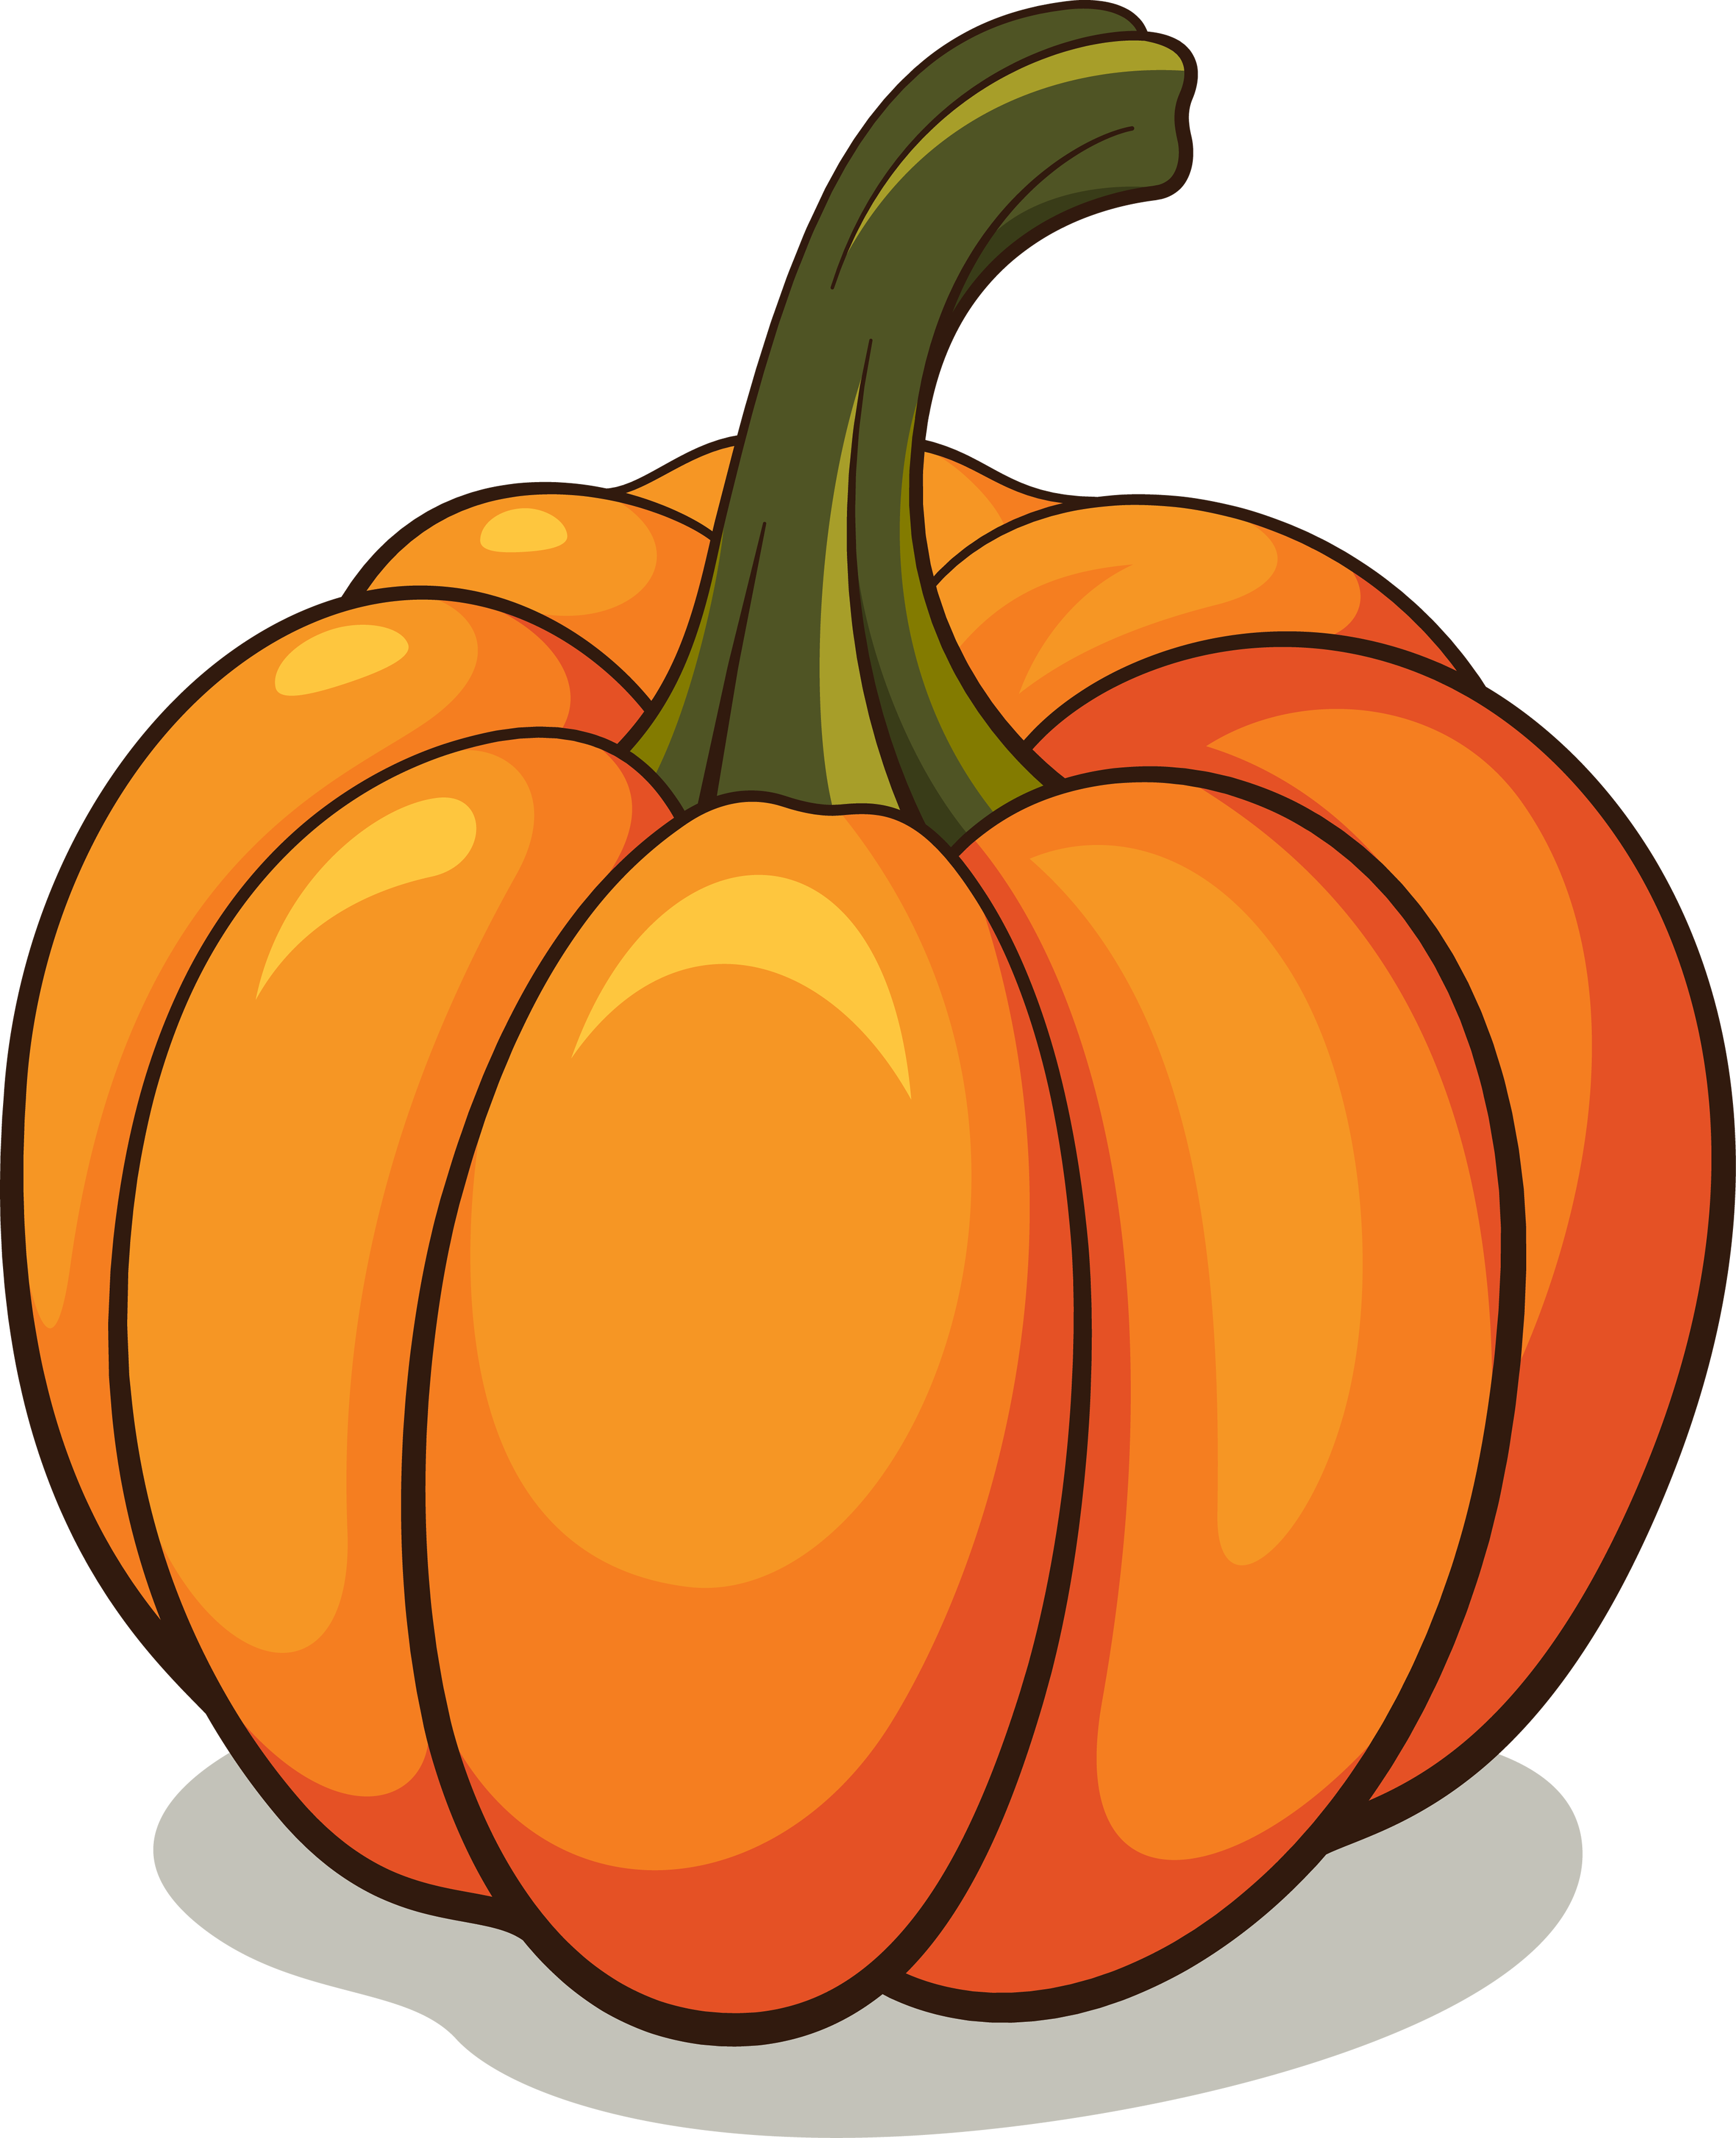 Harvest pumpkin clipart picture black and white Pumpkin Clipart Png | cyberuse picture black and white